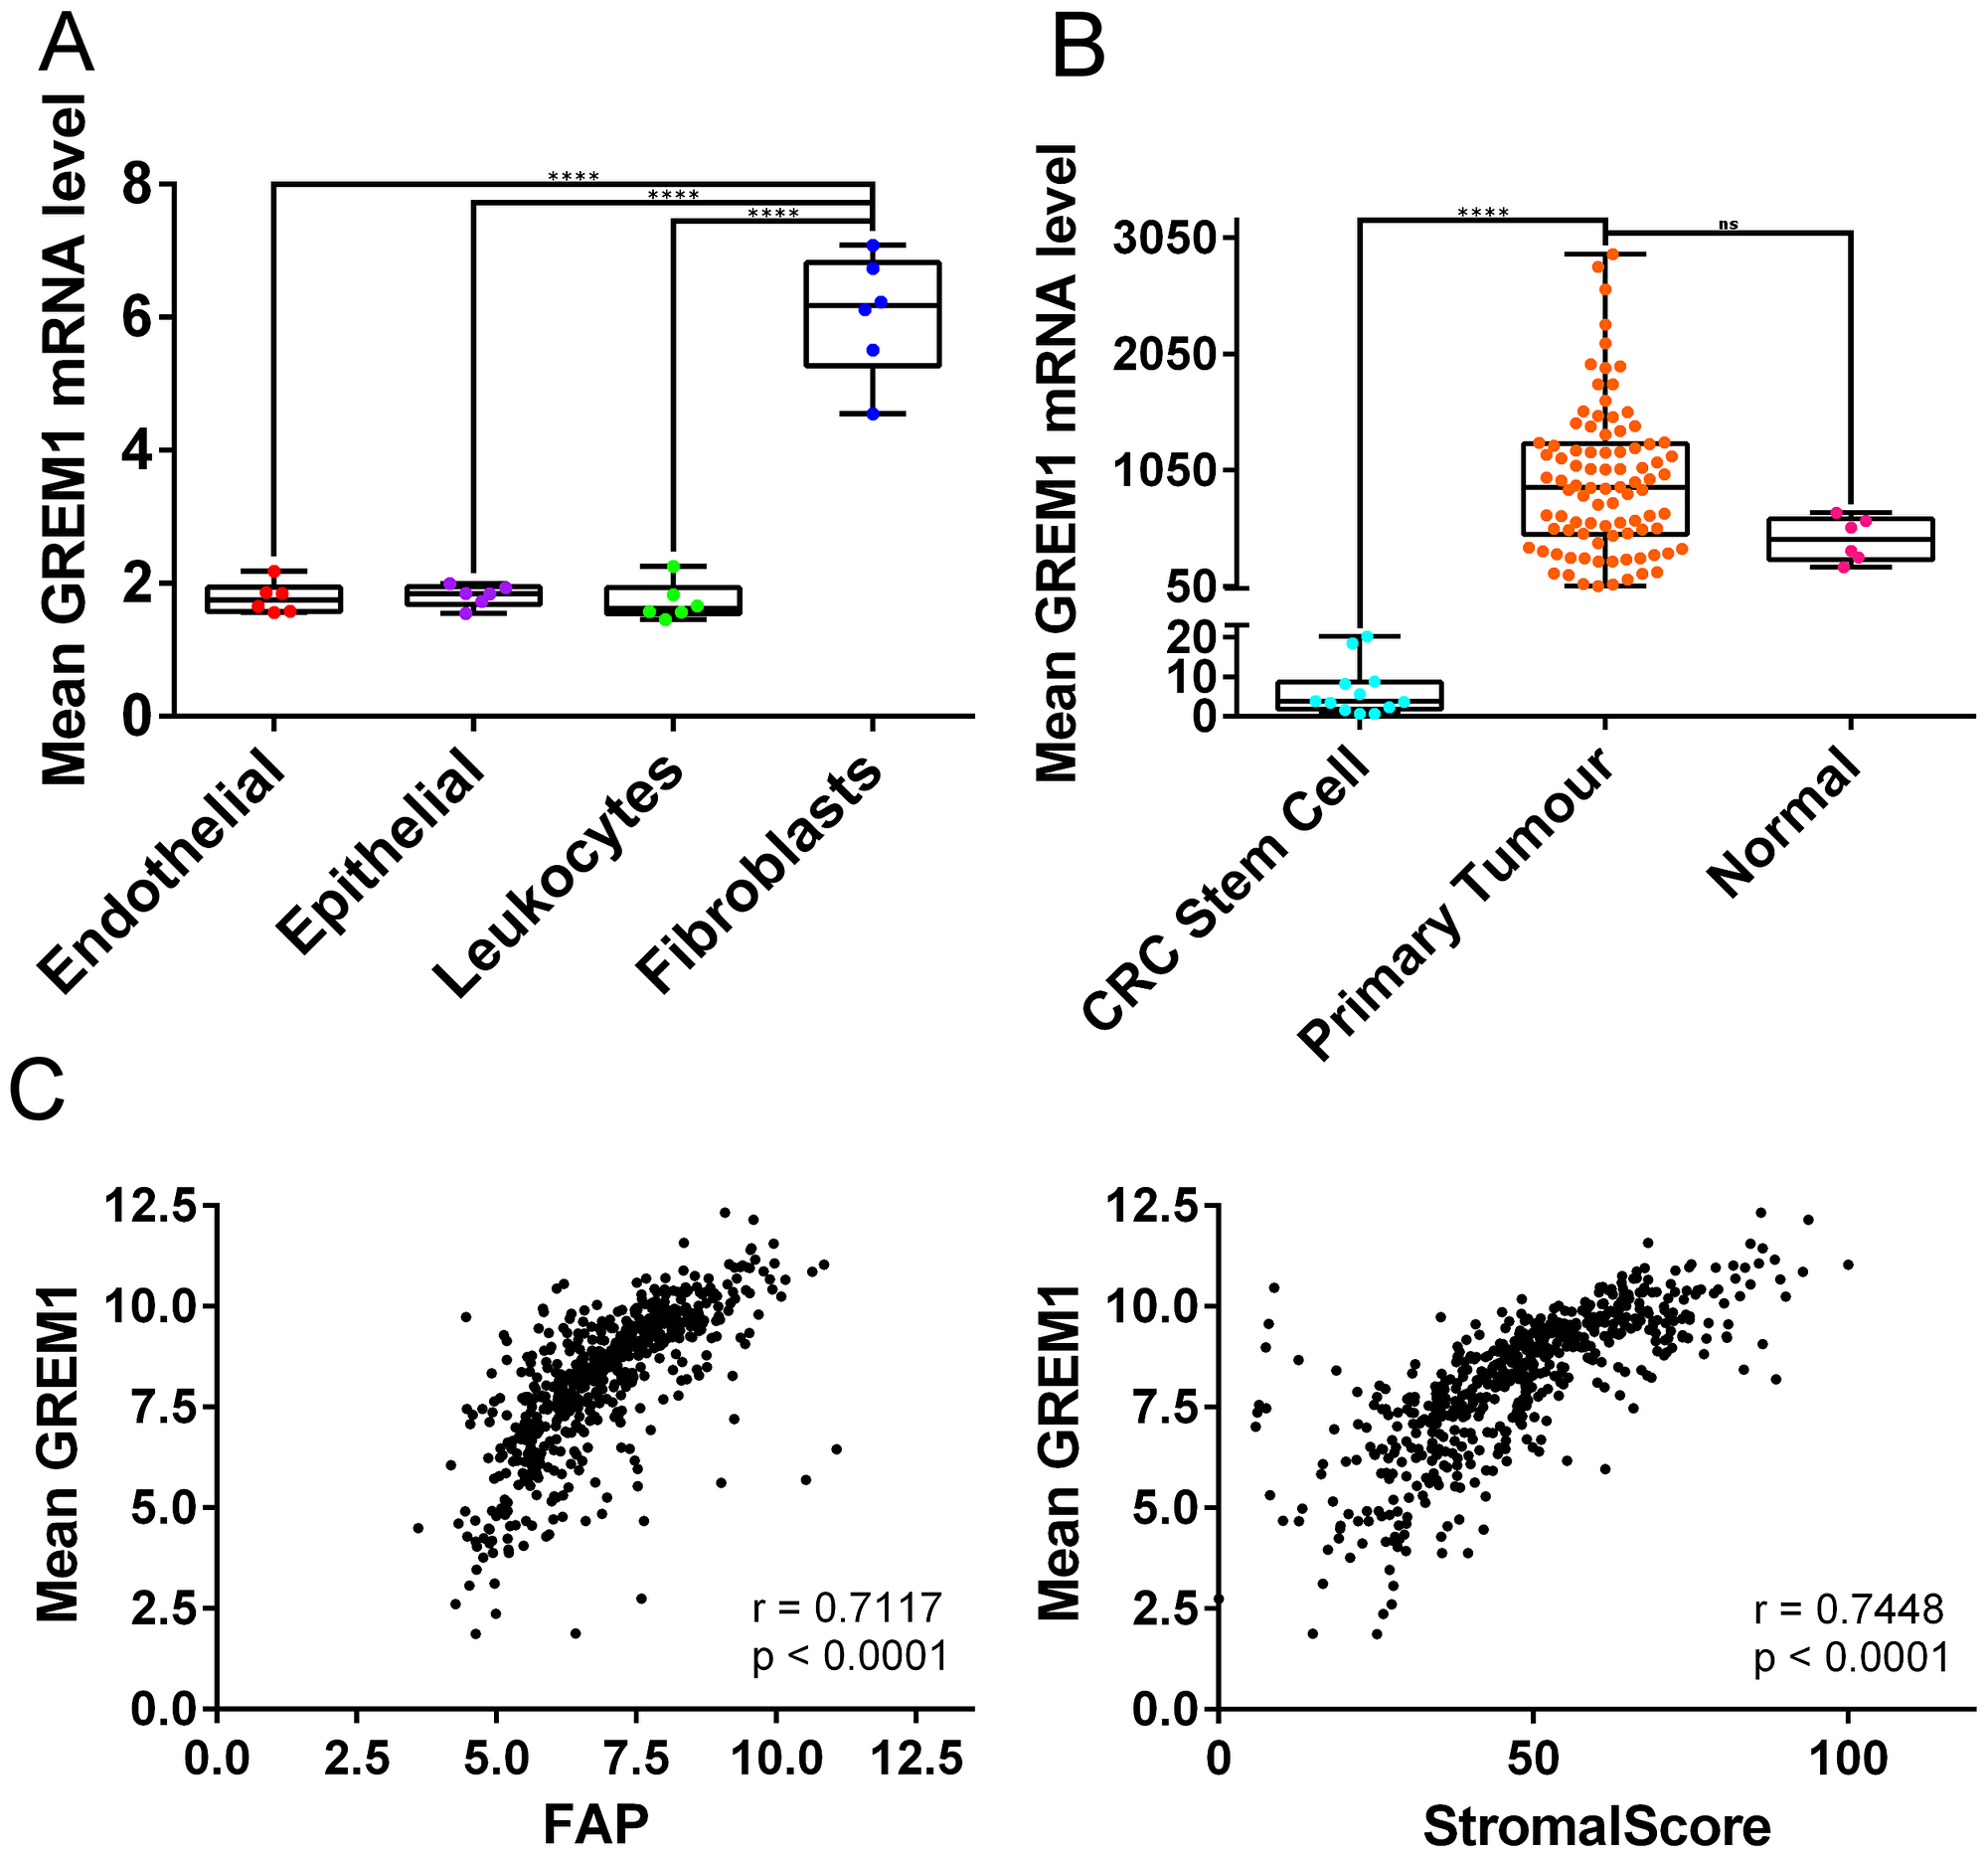 GREM1 mRNA levels in cell populations and tumour tissue, and correlations with FAP expression and StromalScore.